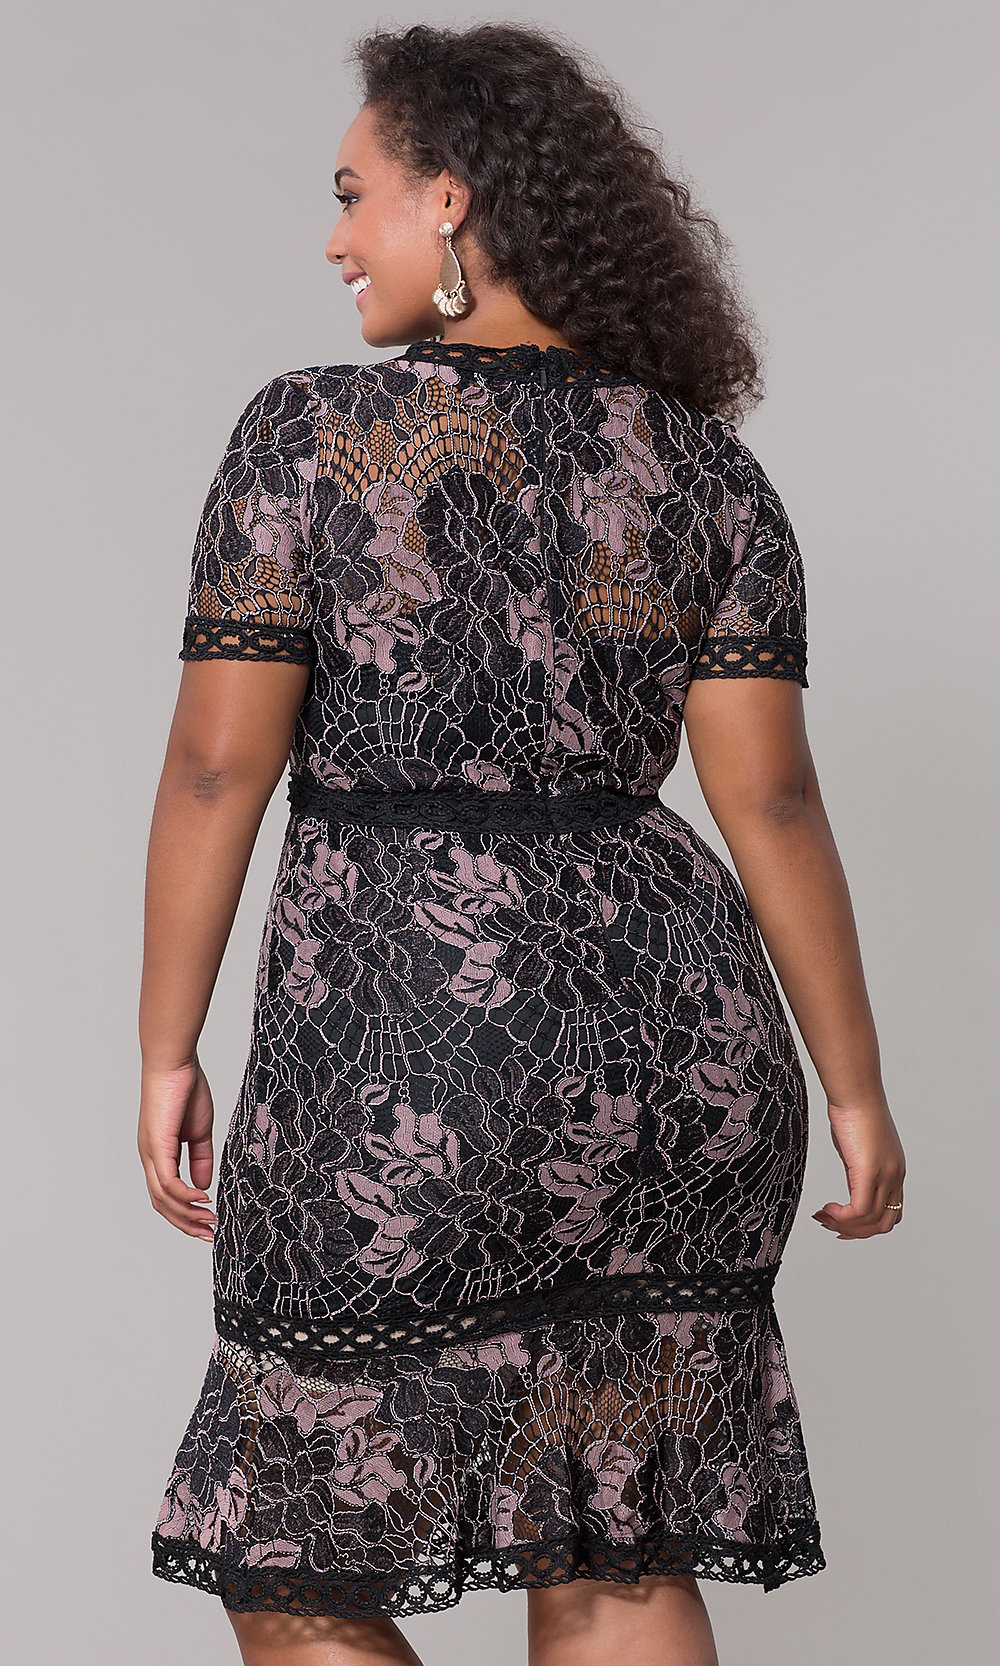 1bb952066d9 ... plus-size black lace wedding-guest party dress. Style  Tap to expand